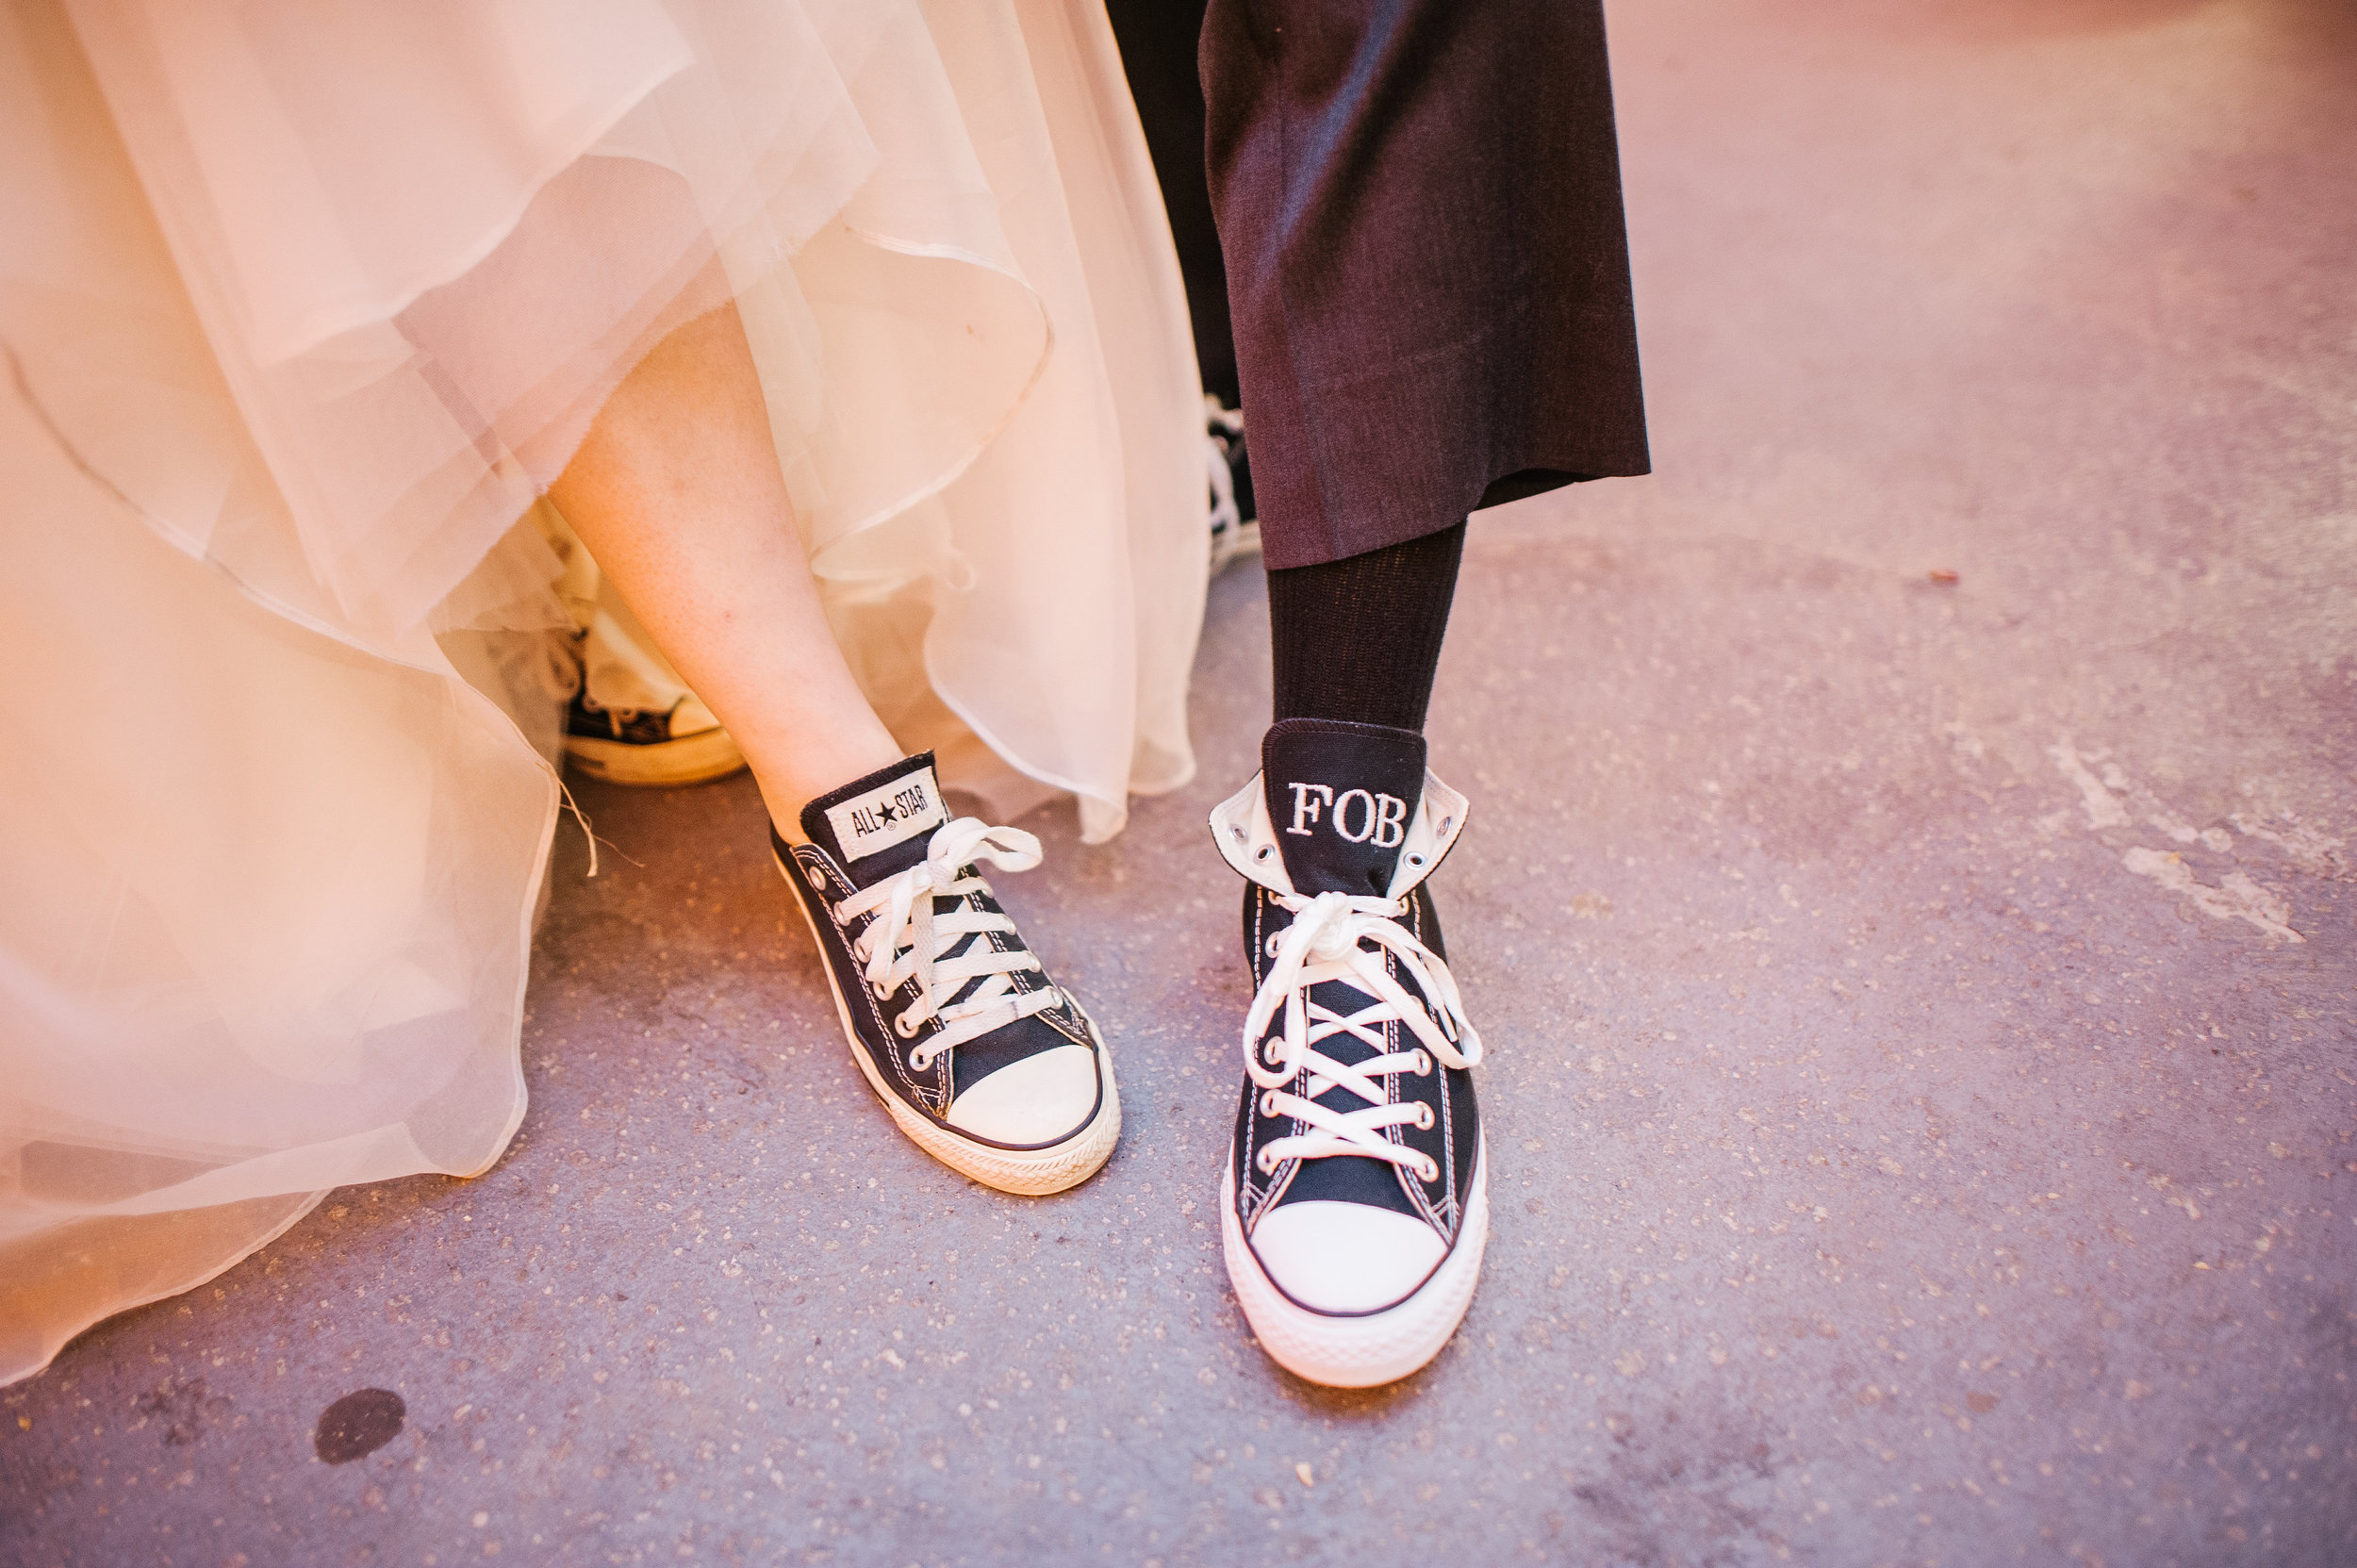 The bride and her father wore matching black Converse during their specialdance.